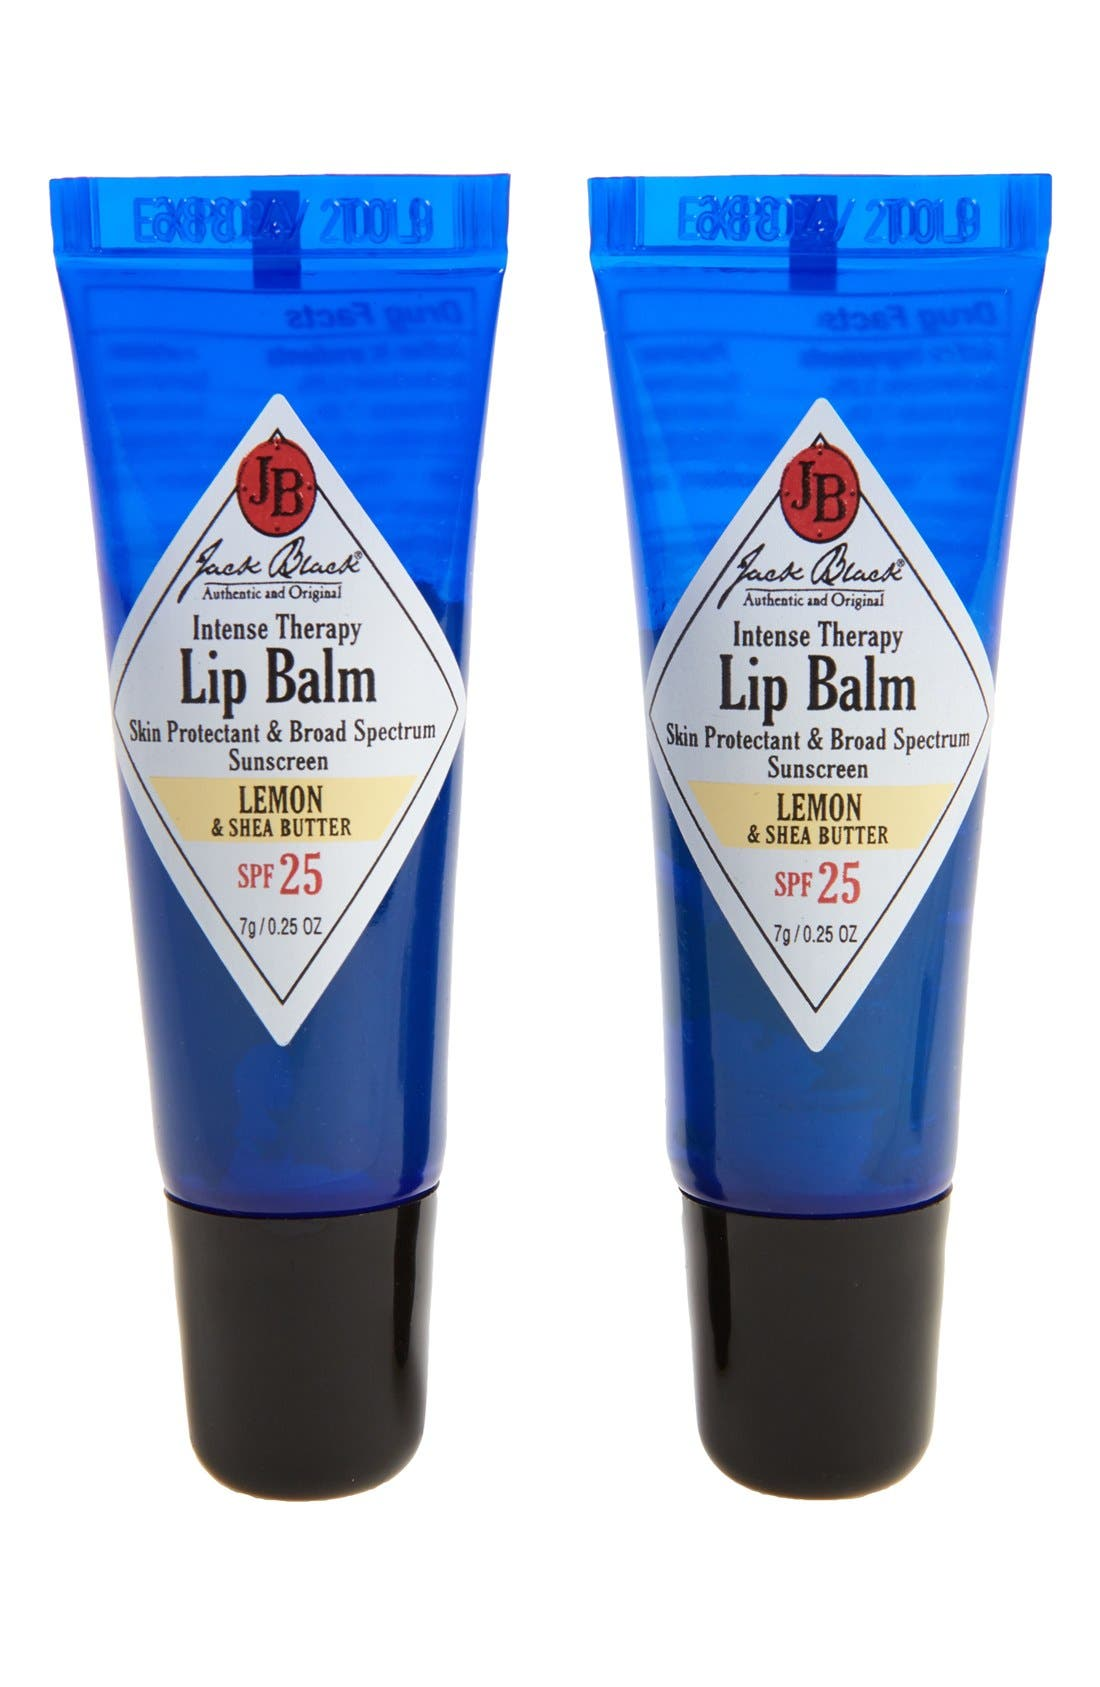 Jack Black Intense Therapy Lip Balm SPF 25 Duo (Nordstrom Exclusive)